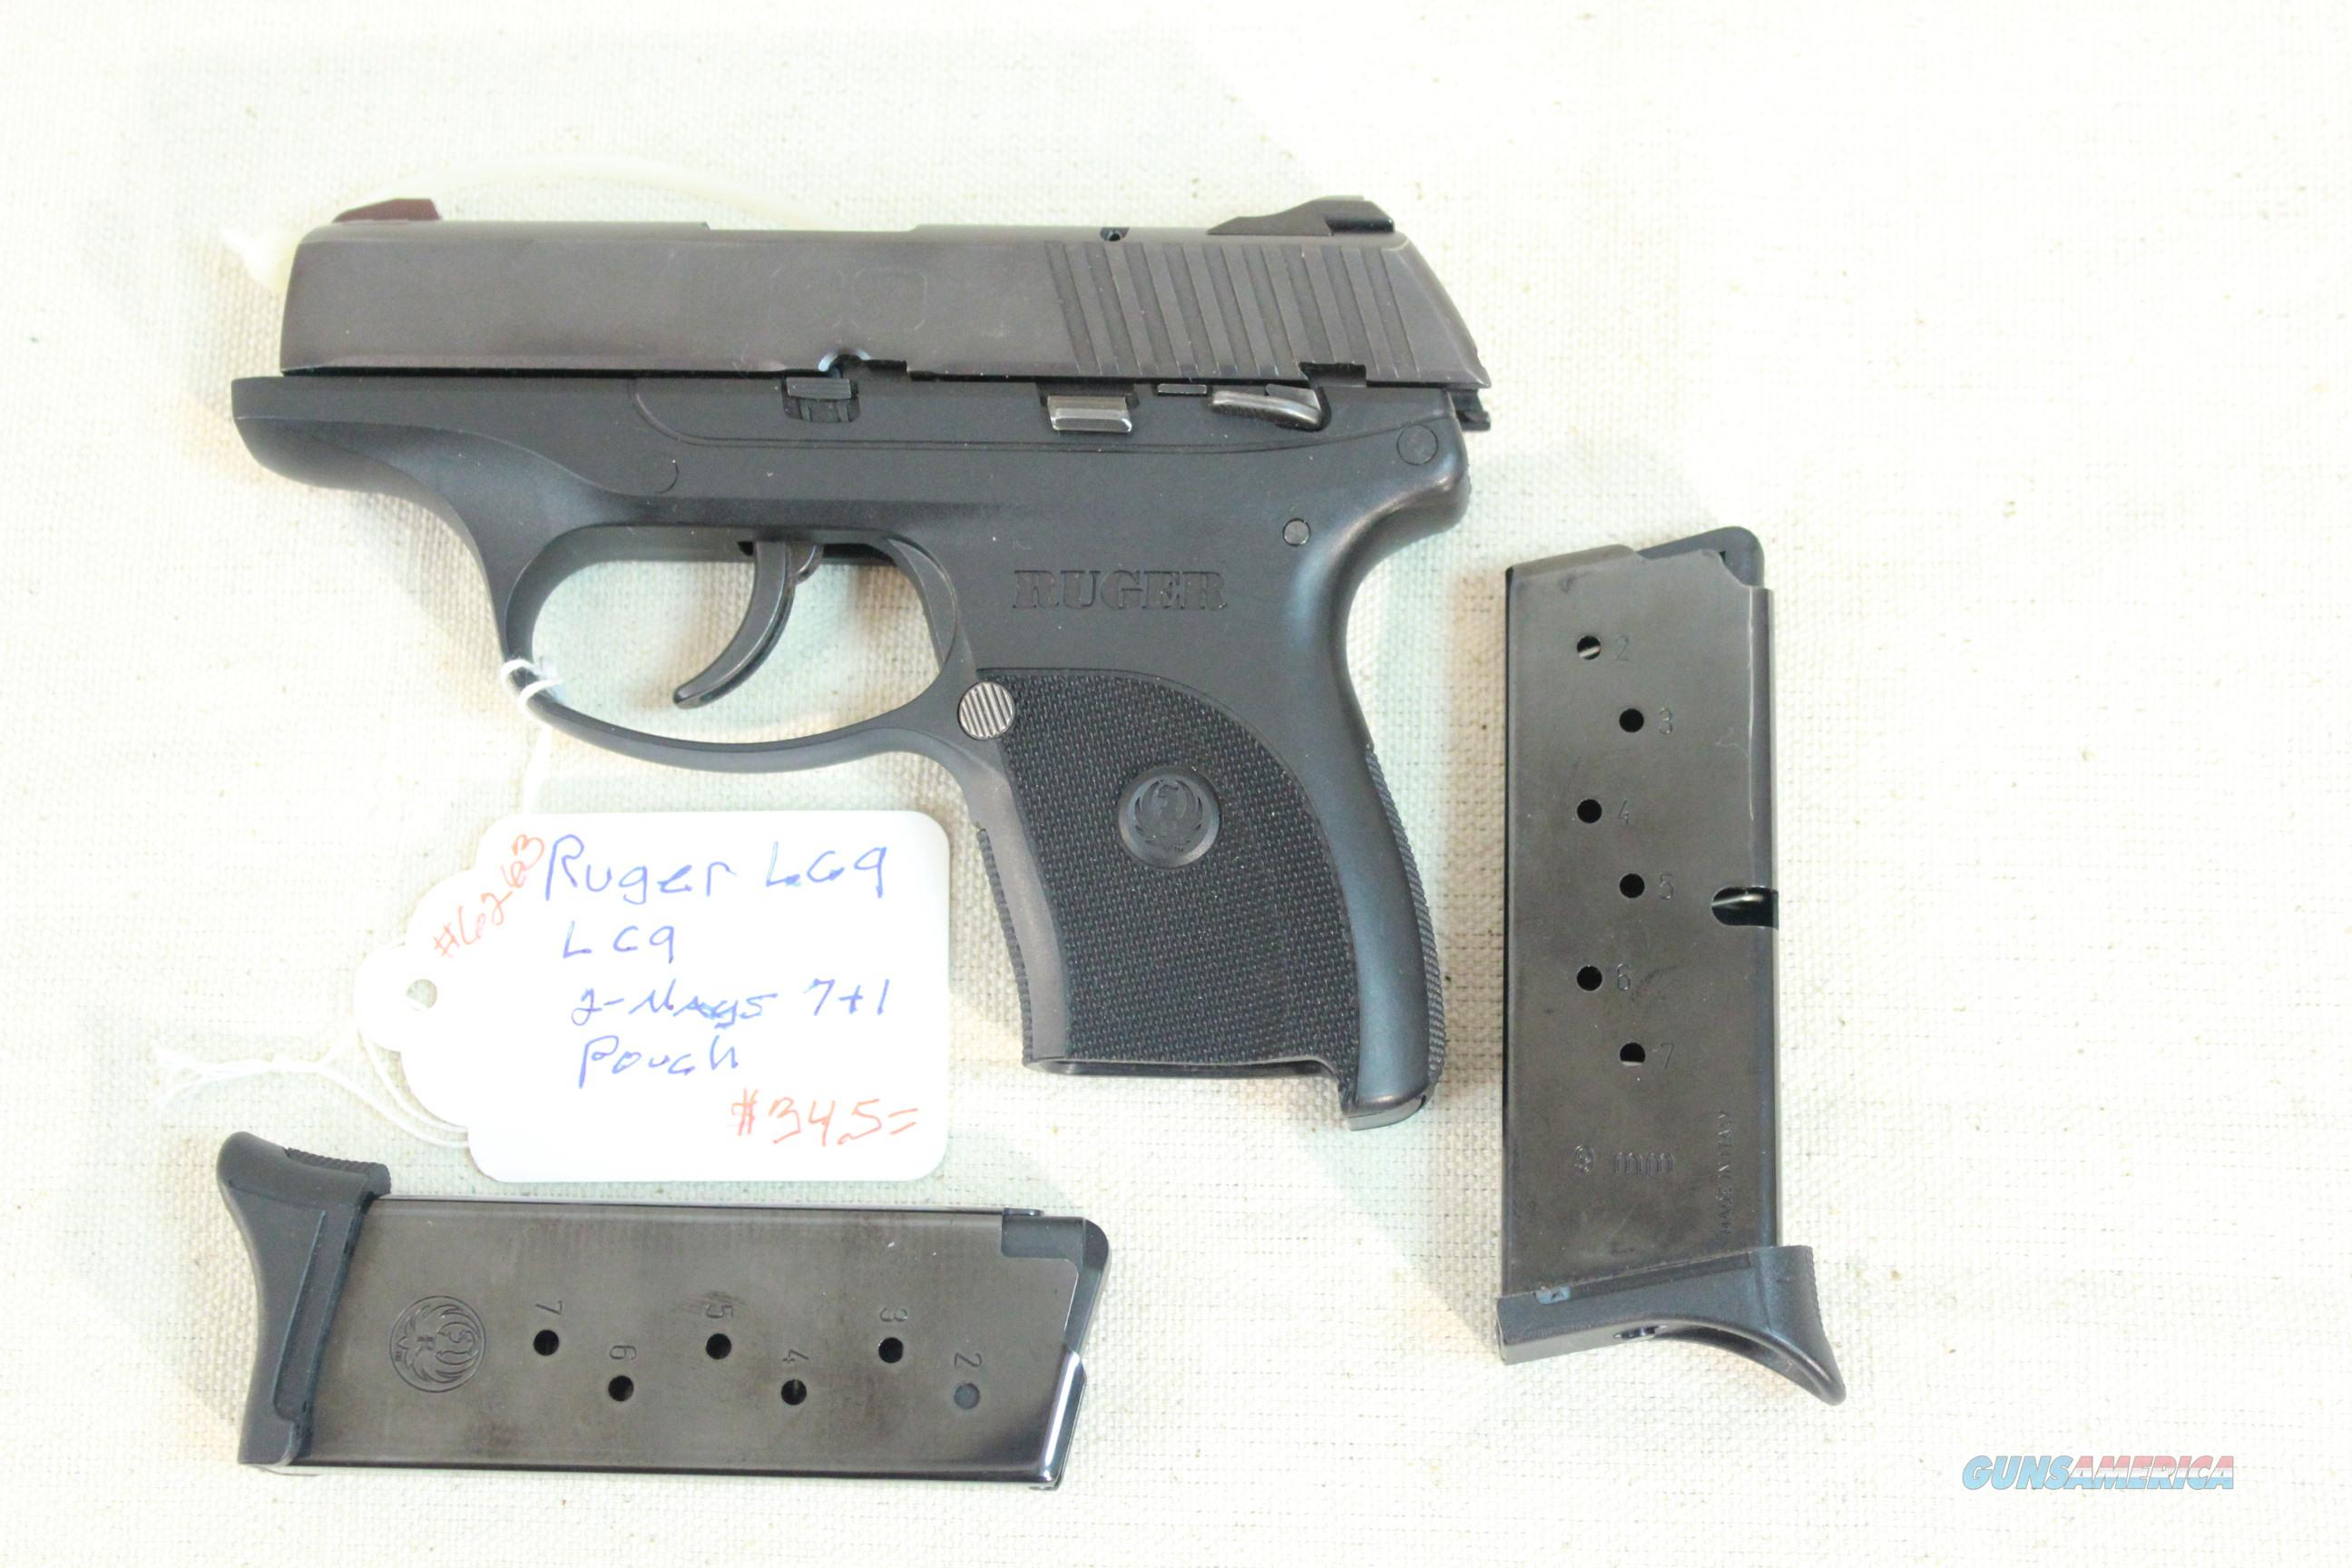 Ruger Model LC9 9mm w/2 7+1 factory magazines and pouch.  Guns > Pistols > Ruger Semi-Auto Pistols > LC9